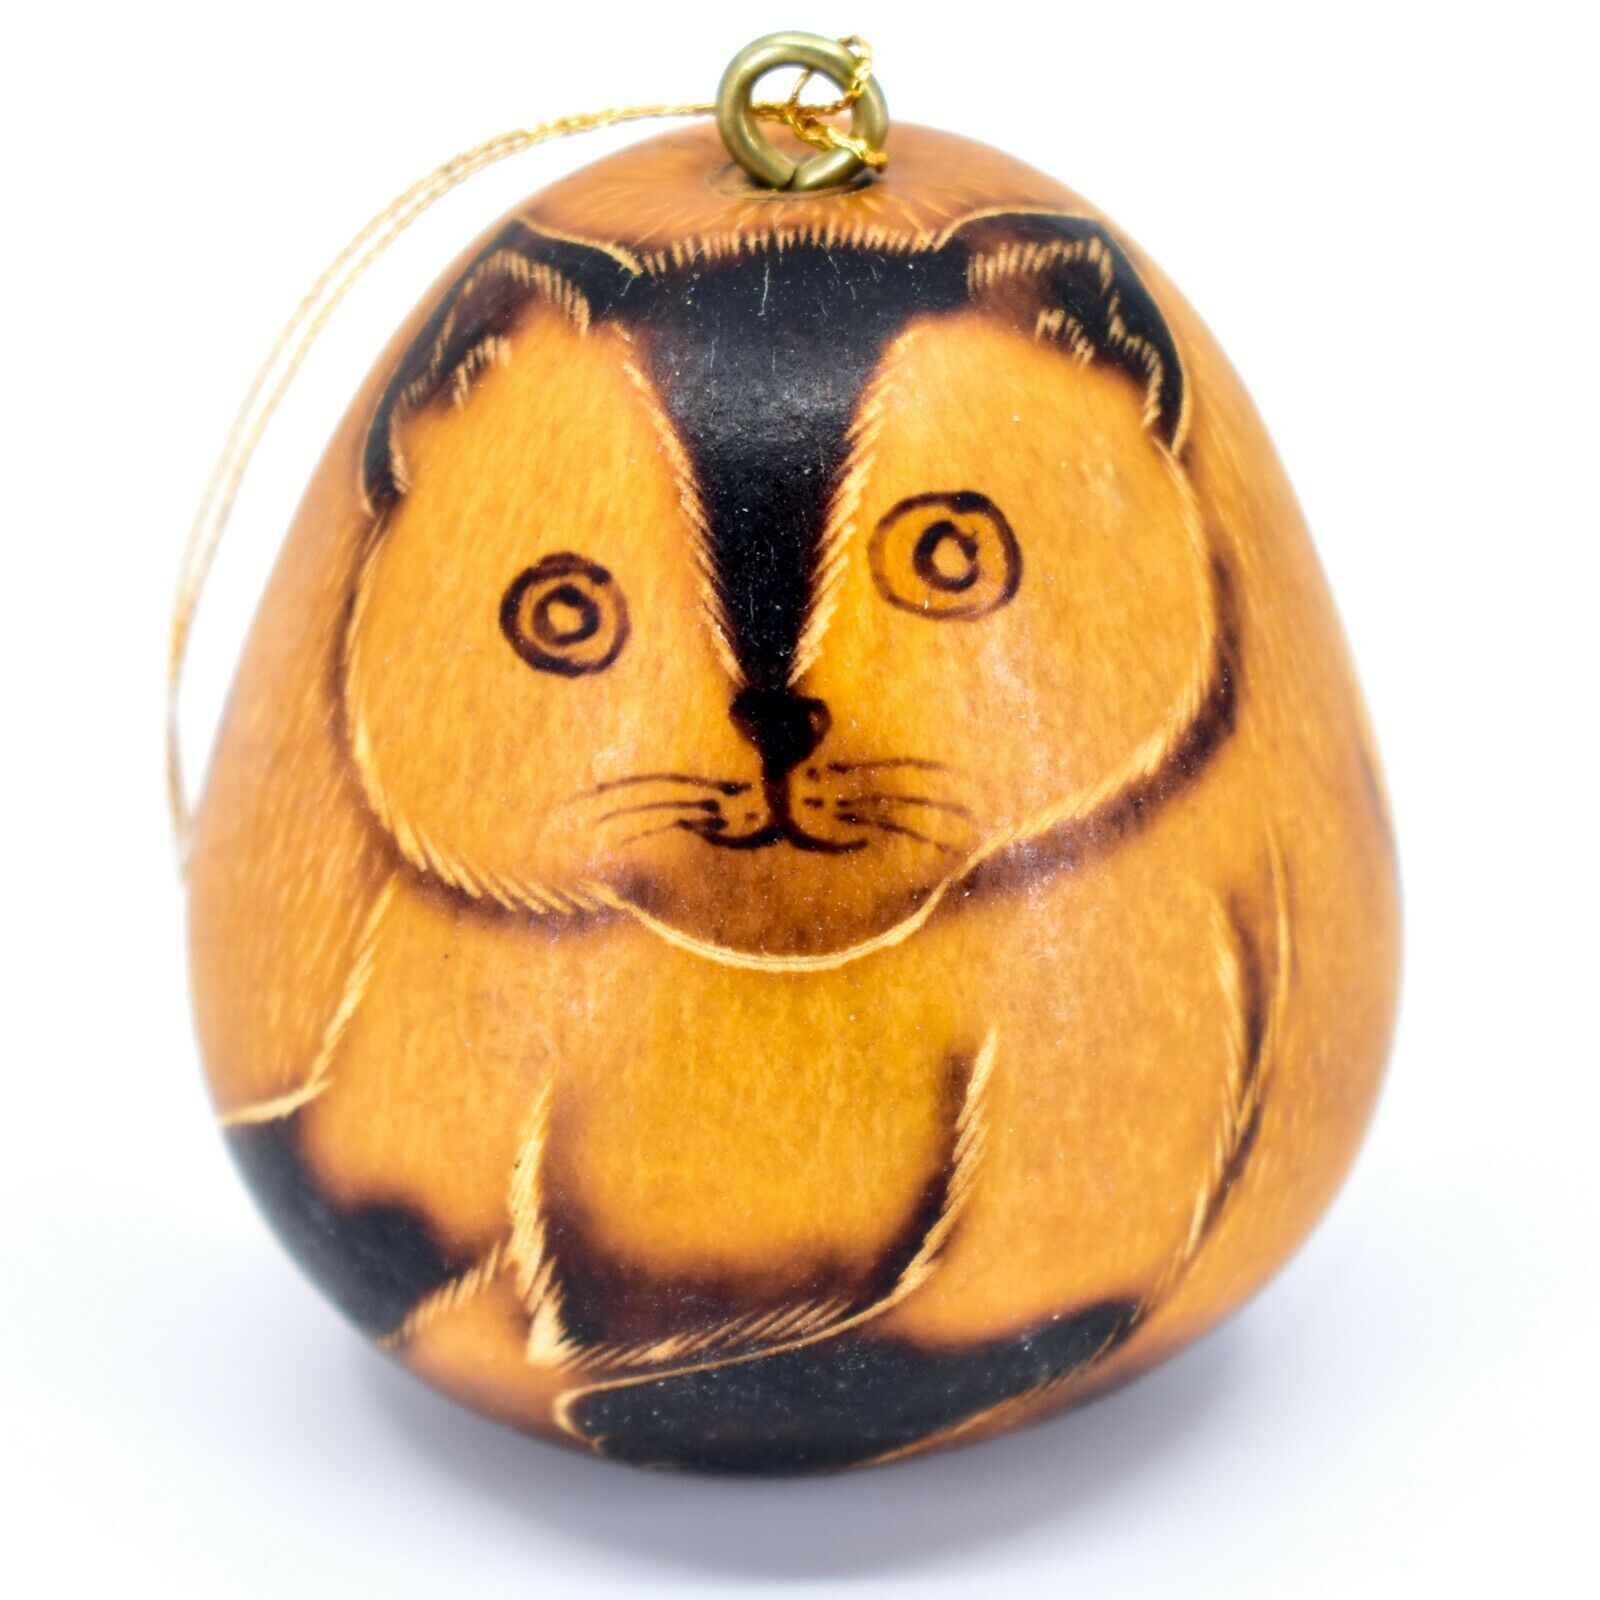 Handcrafted Carved Gourd Art Siamese Cat Kitten Kitty Ornament Made in Peru